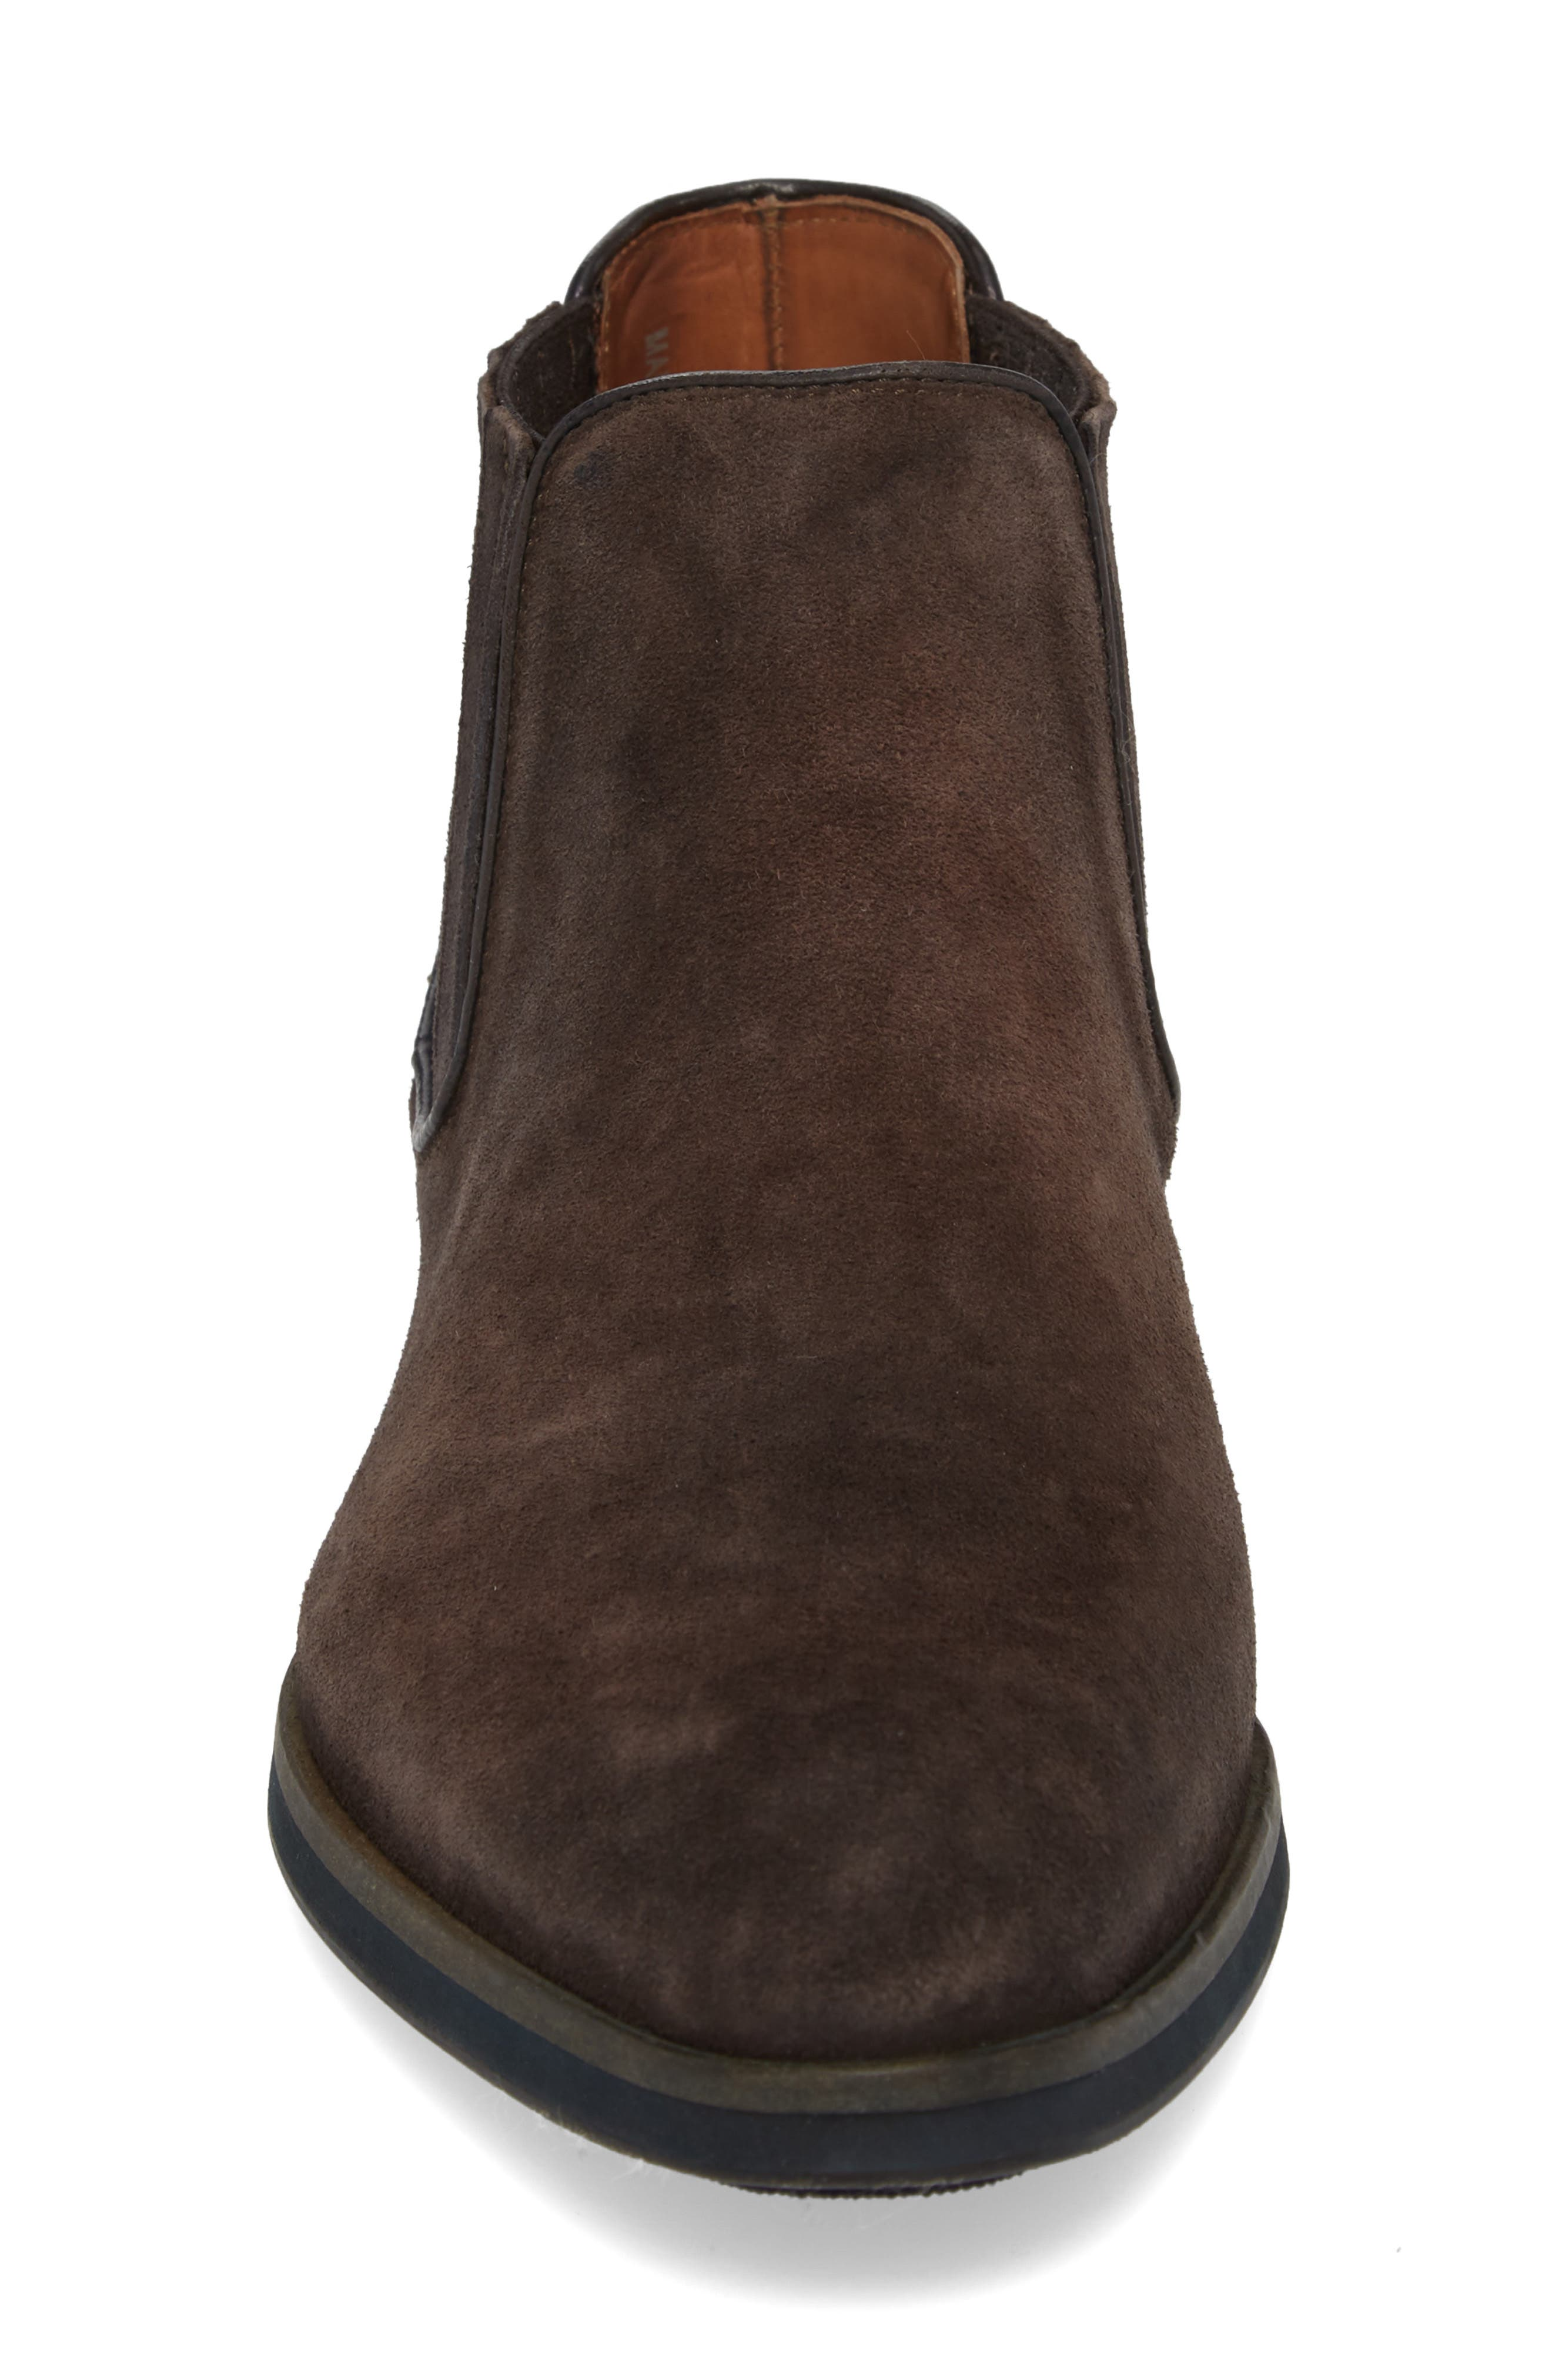 Gus Mid Top Chelsea Boot,                             Alternate thumbnail 4, color,                             Coffee Oily Suede